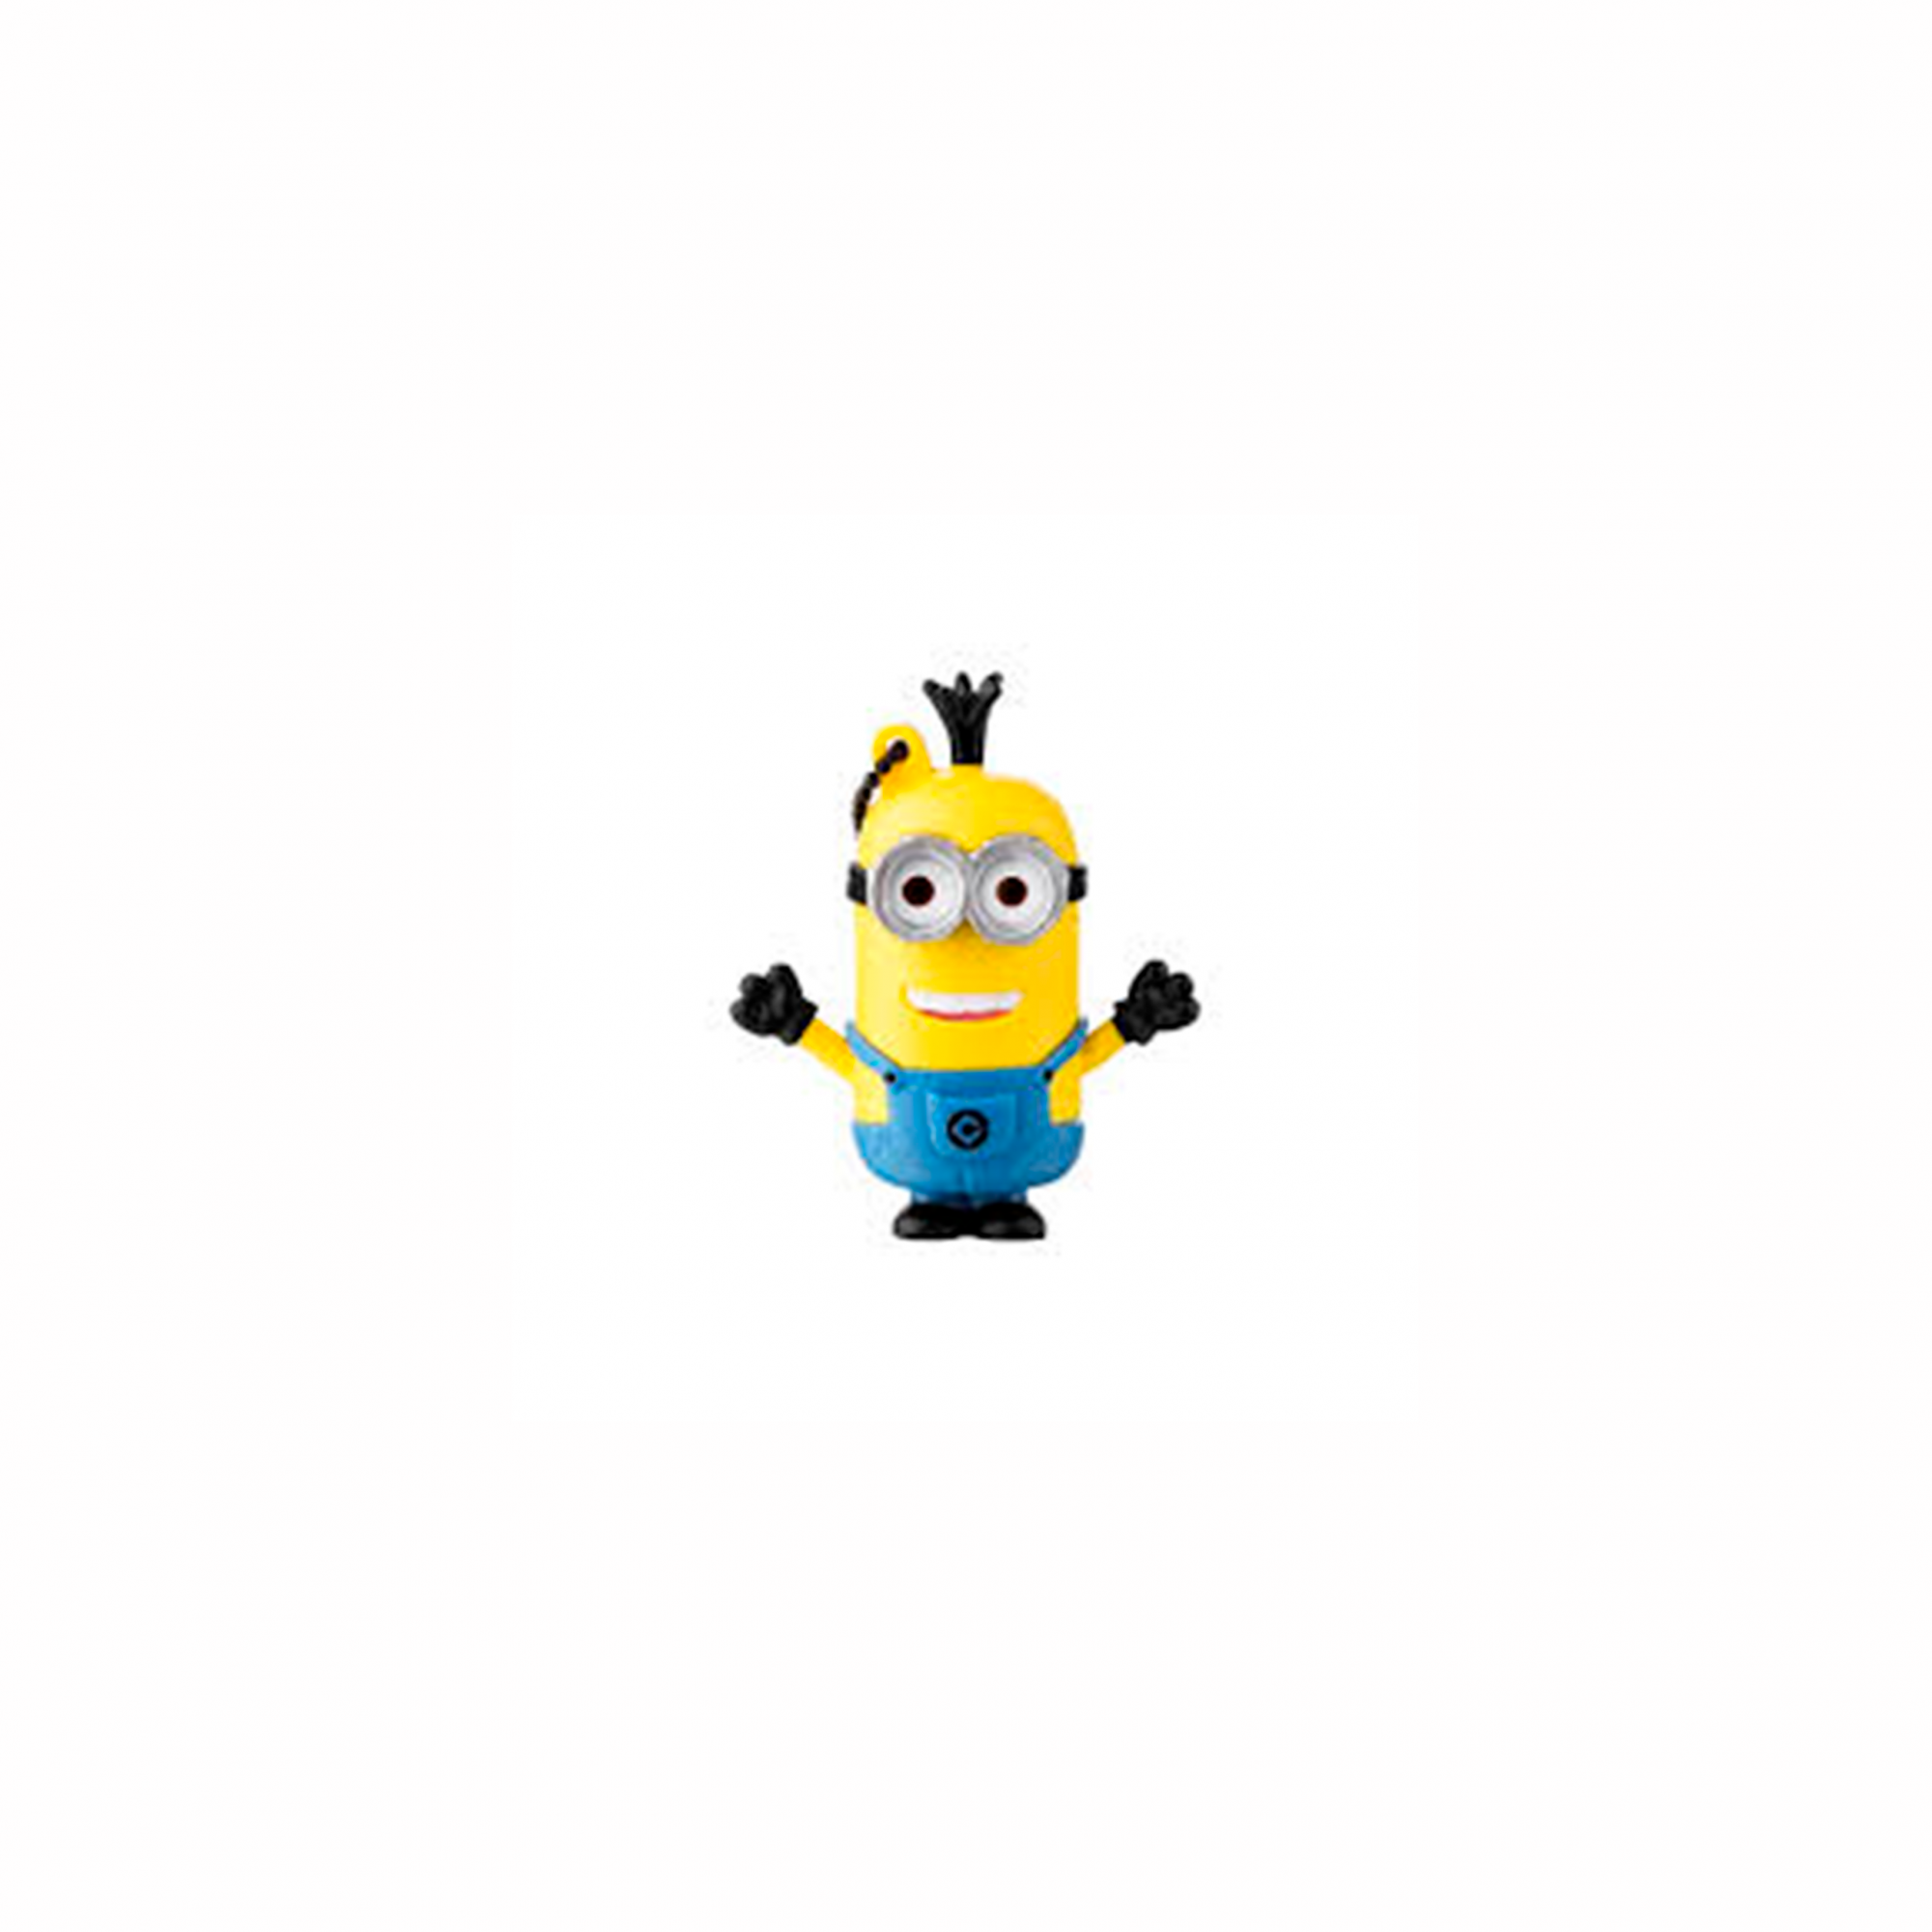 PENDRIVE MINIONS TIM 8GB PD096 MULTILASER